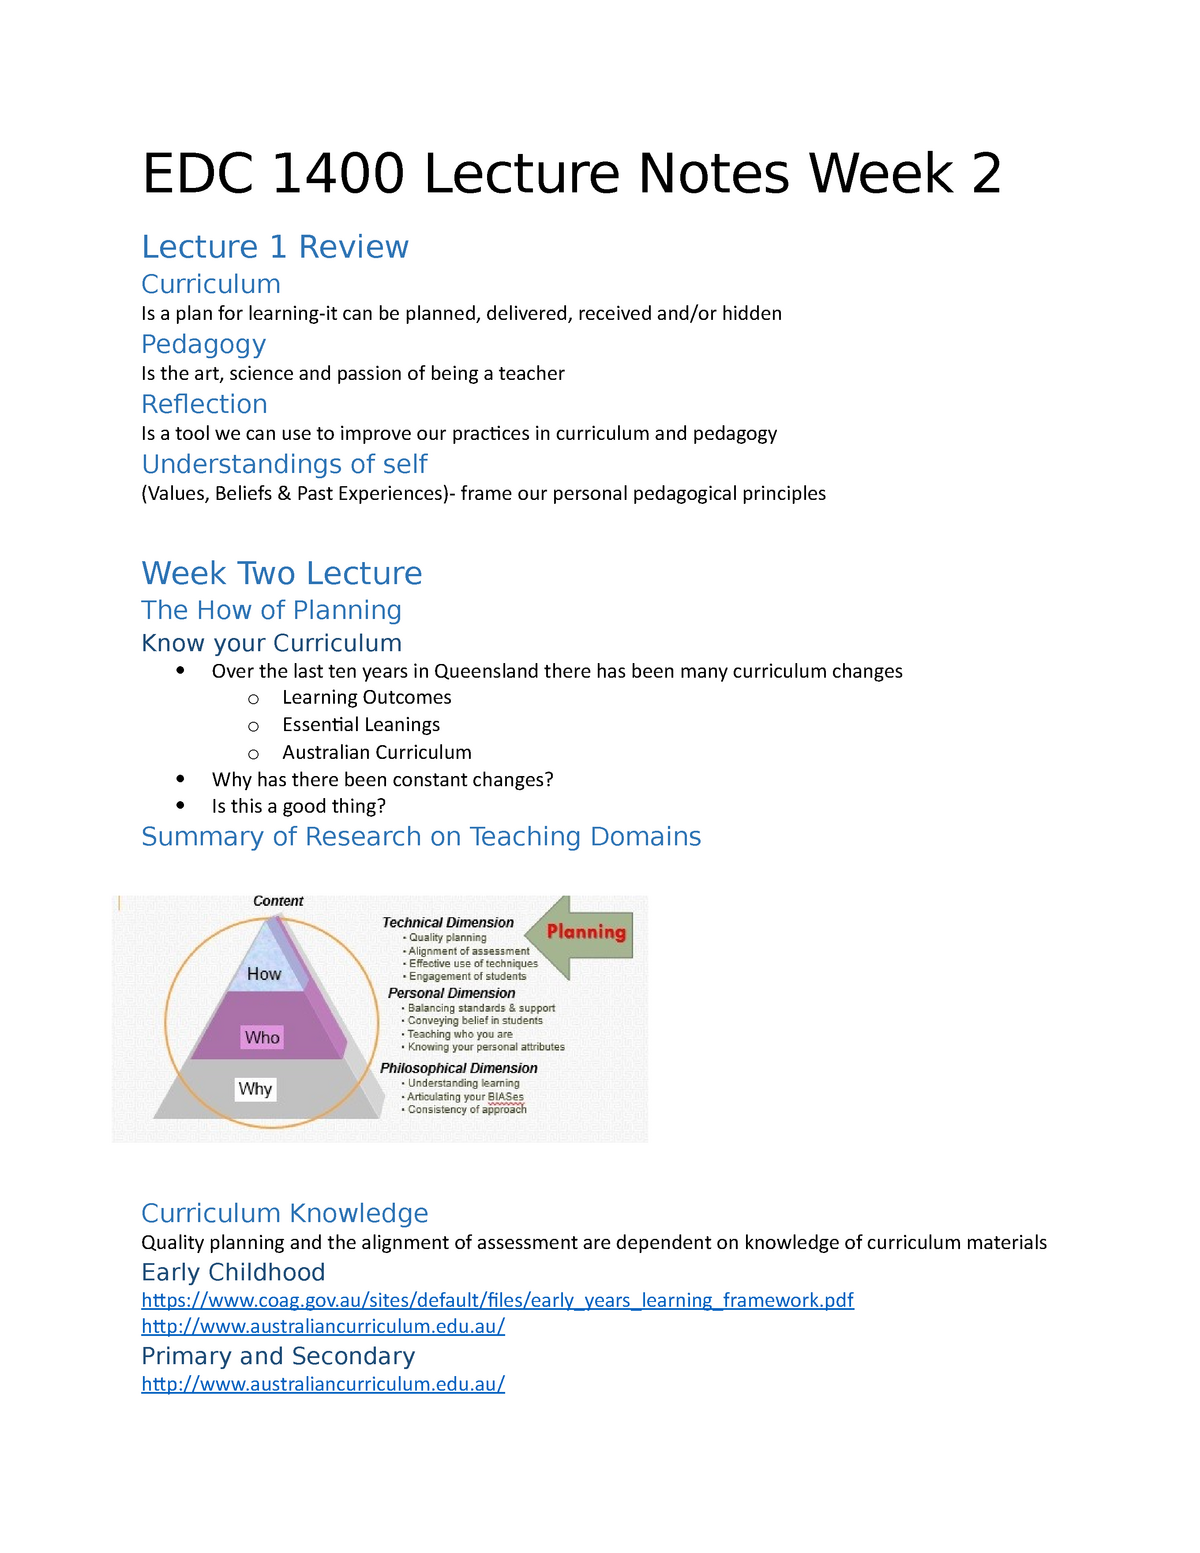 Week 2, Lecture Notes - EDC1400: Foundations of Curriculum and